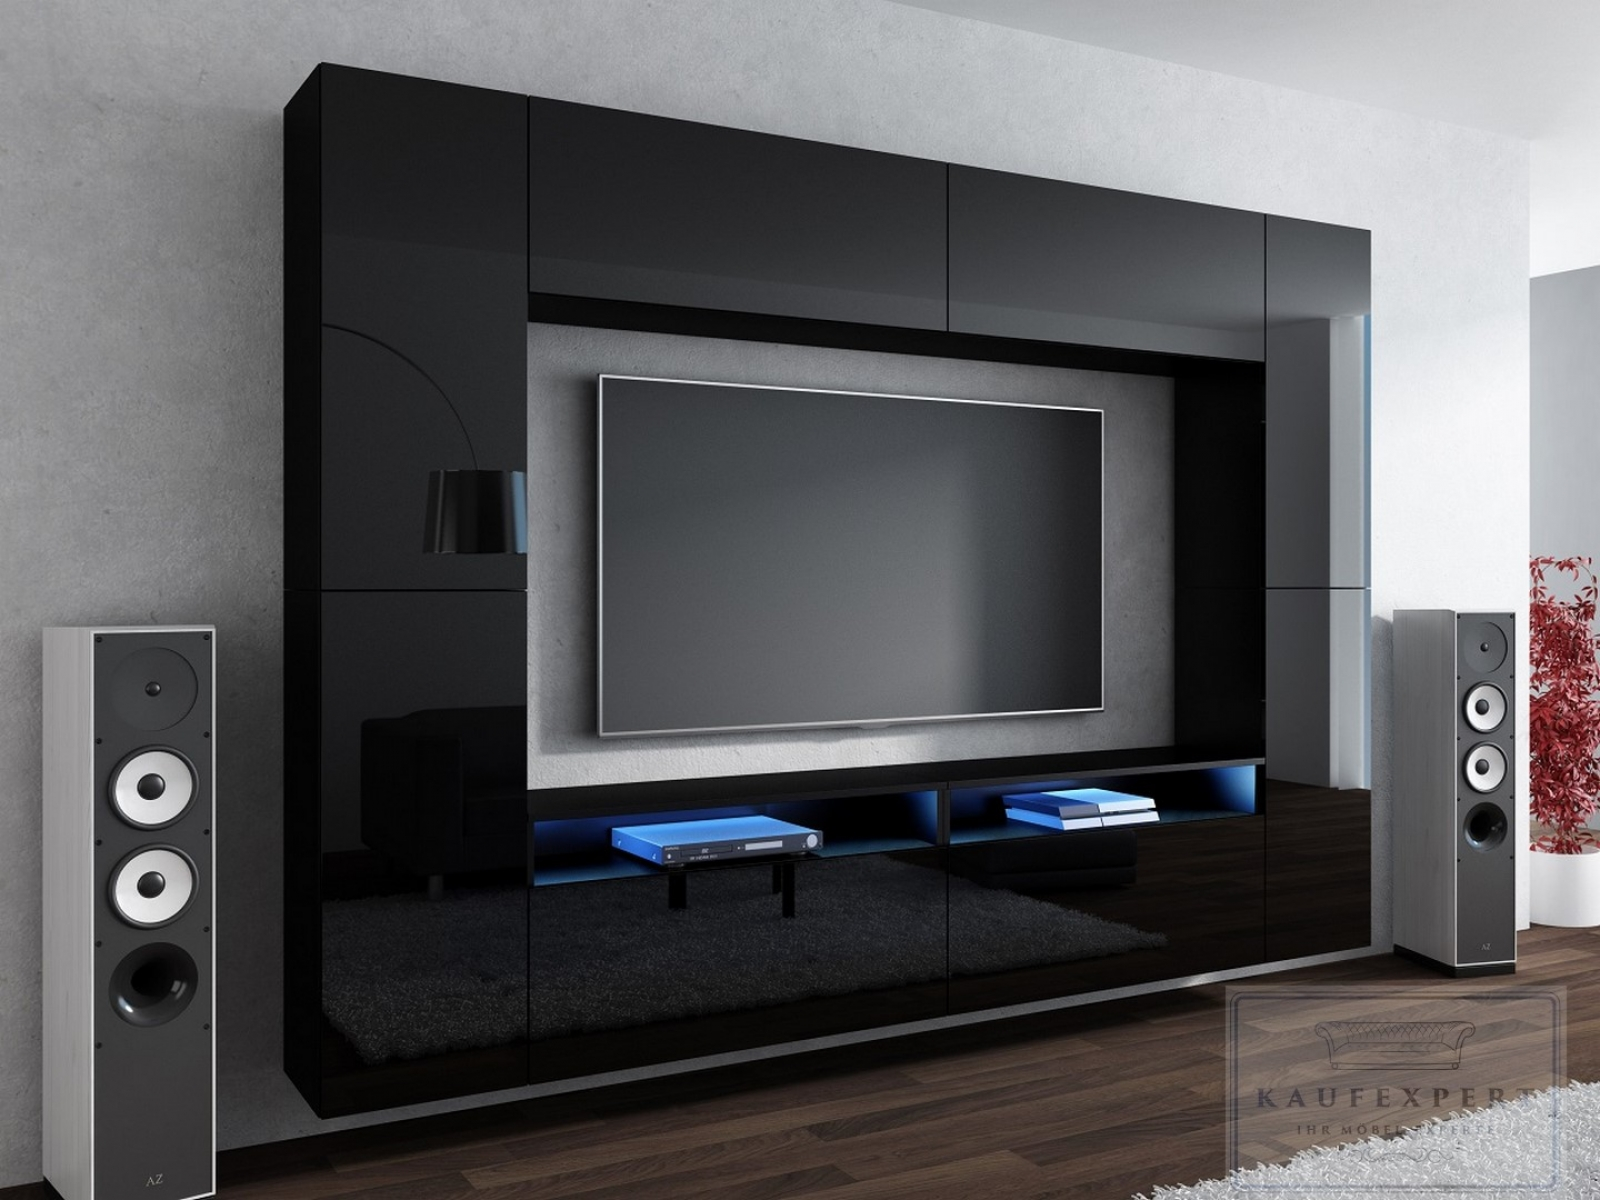 kaufexpert wohnwand cinema schwarz hochglanz 280 cm mediawand medienwand design modern led. Black Bedroom Furniture Sets. Home Design Ideas